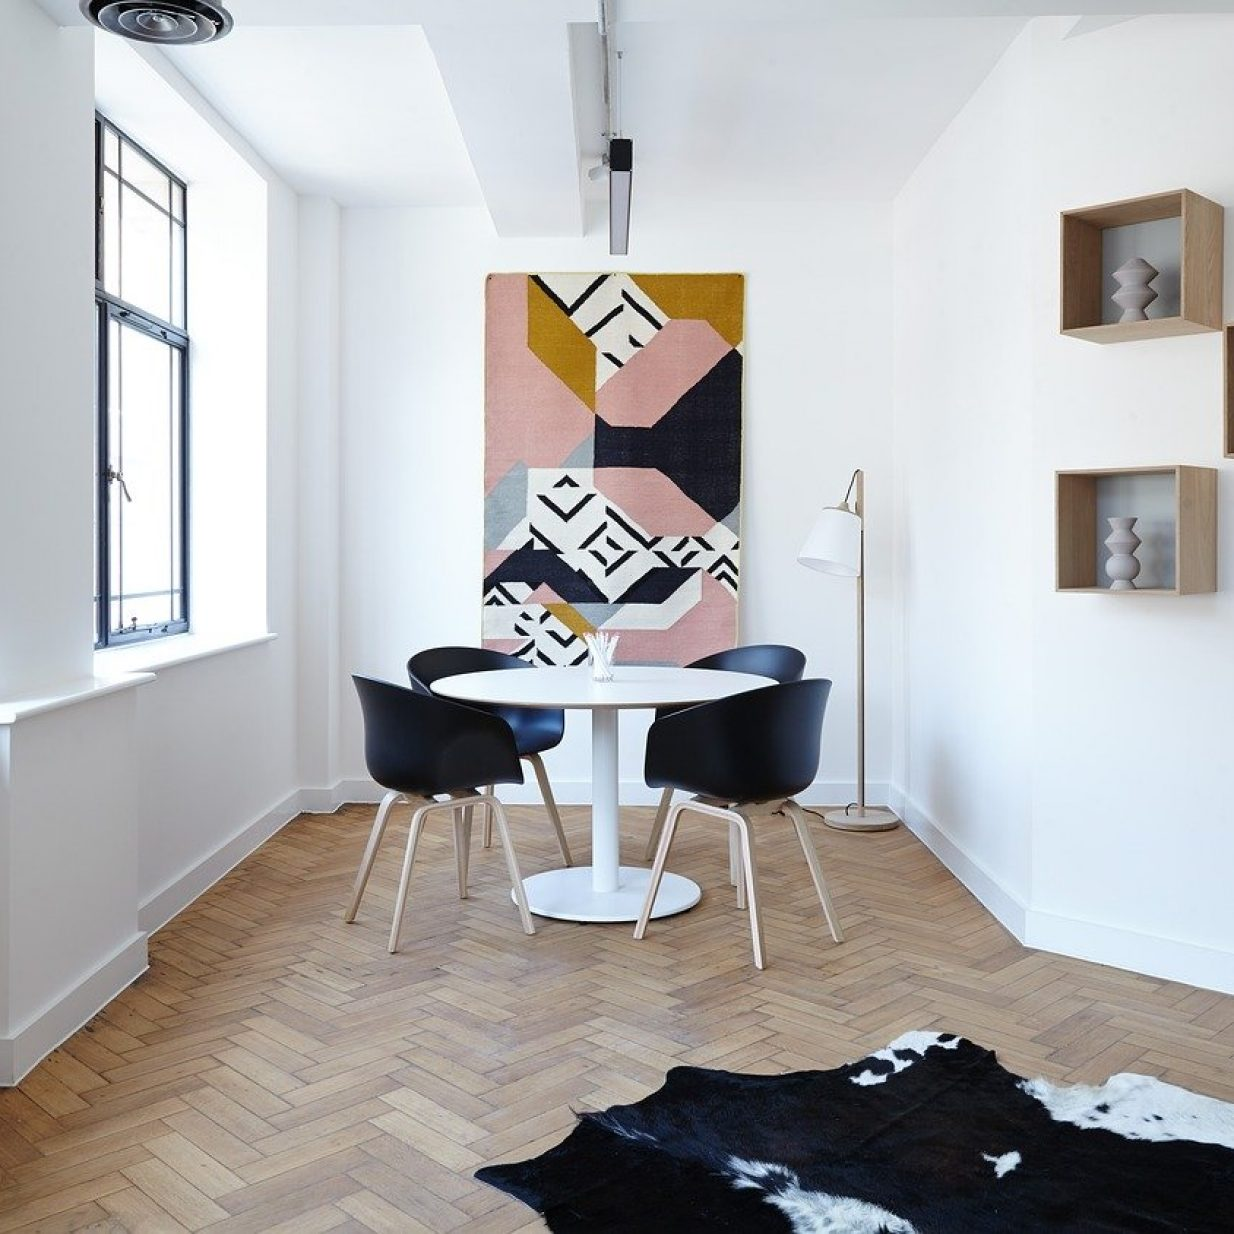 chairs-living-room-table-2181968-1-1-1-1-1-1-1-1-1-1-1-1-1-1-1-1-1-1-1-1-1-1-1-1-1-1-1-1-1-1-1-1-1-1-1-1-1-1-1-1-1-1-1-1-1-1-1-1-1-1-1-1-1-1-1-1-1-1-1-1-1-1-1-1-1-1-1-1-1-1-1-1-1-1.jpg